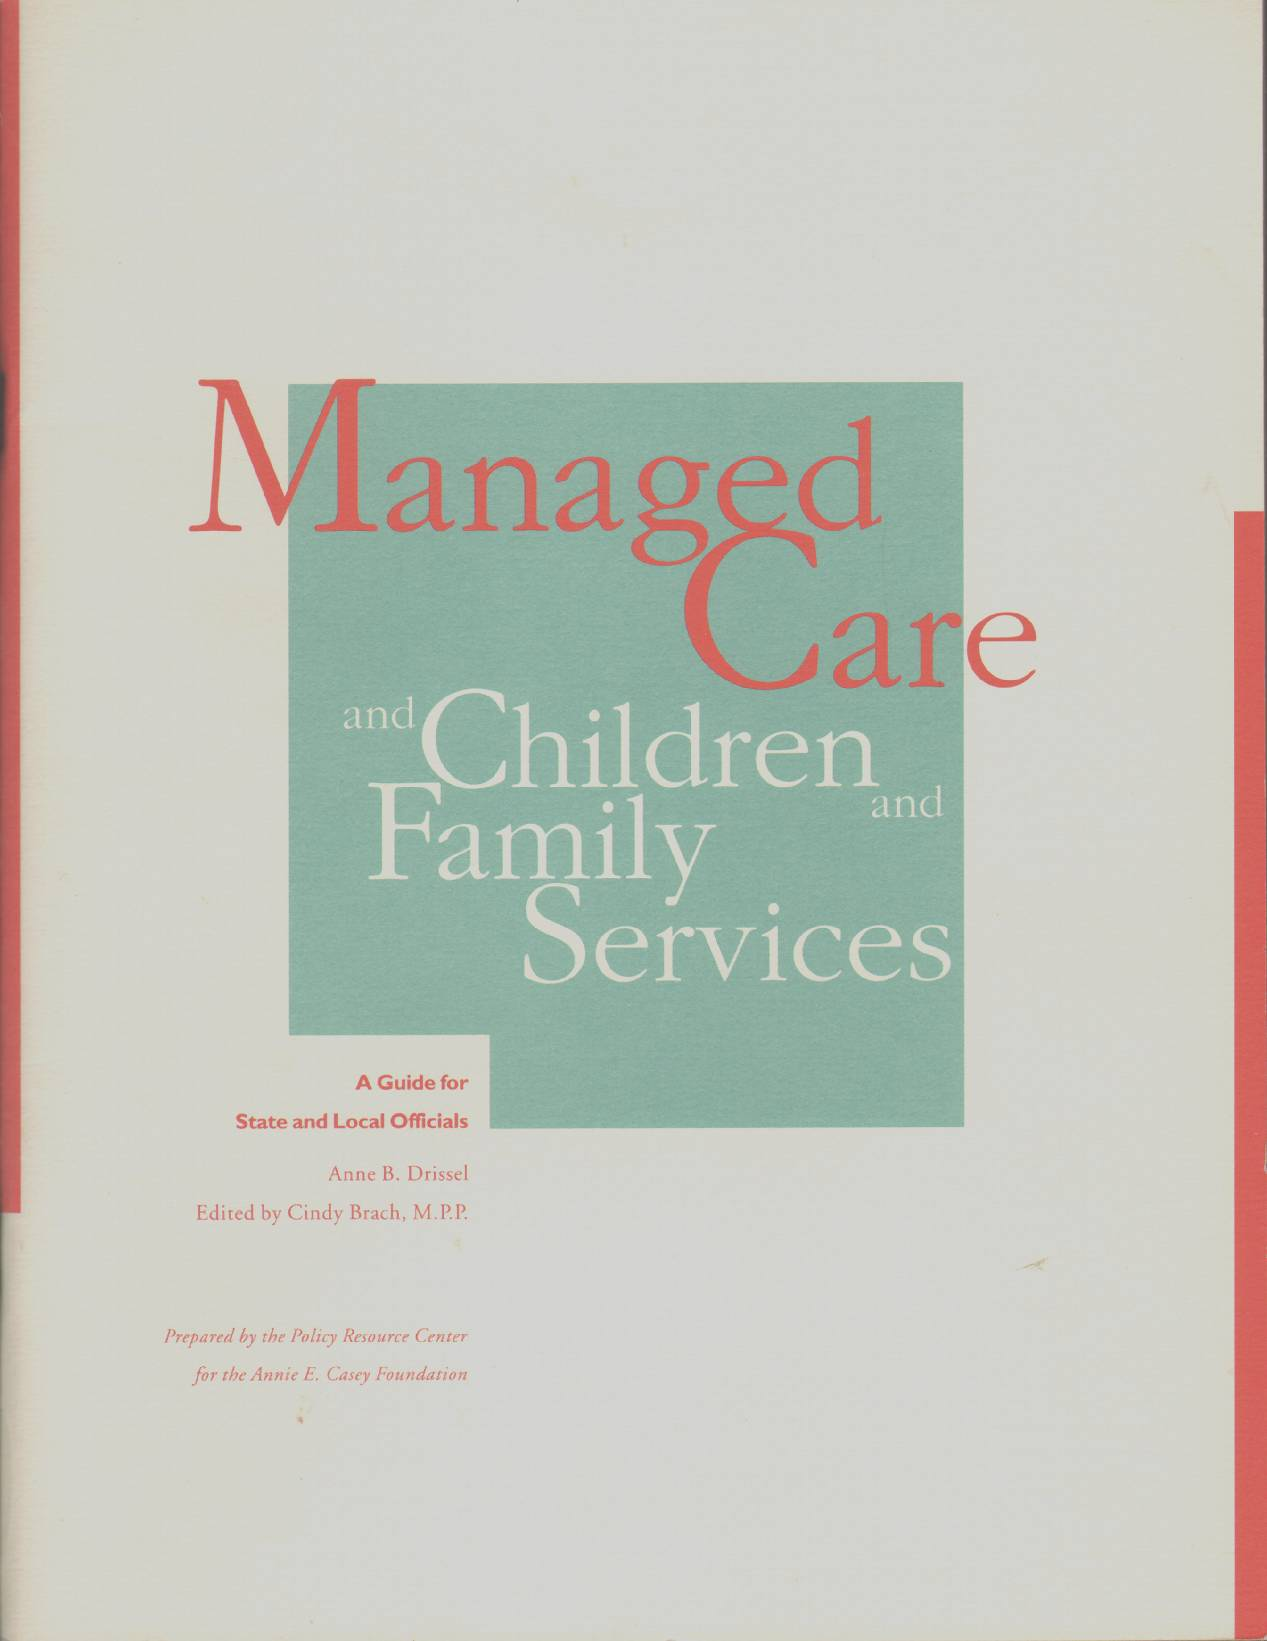 Image for MANAGED CARE AND CHILDREN AND FAMILY SERVICES A Guide for State and Local Officials